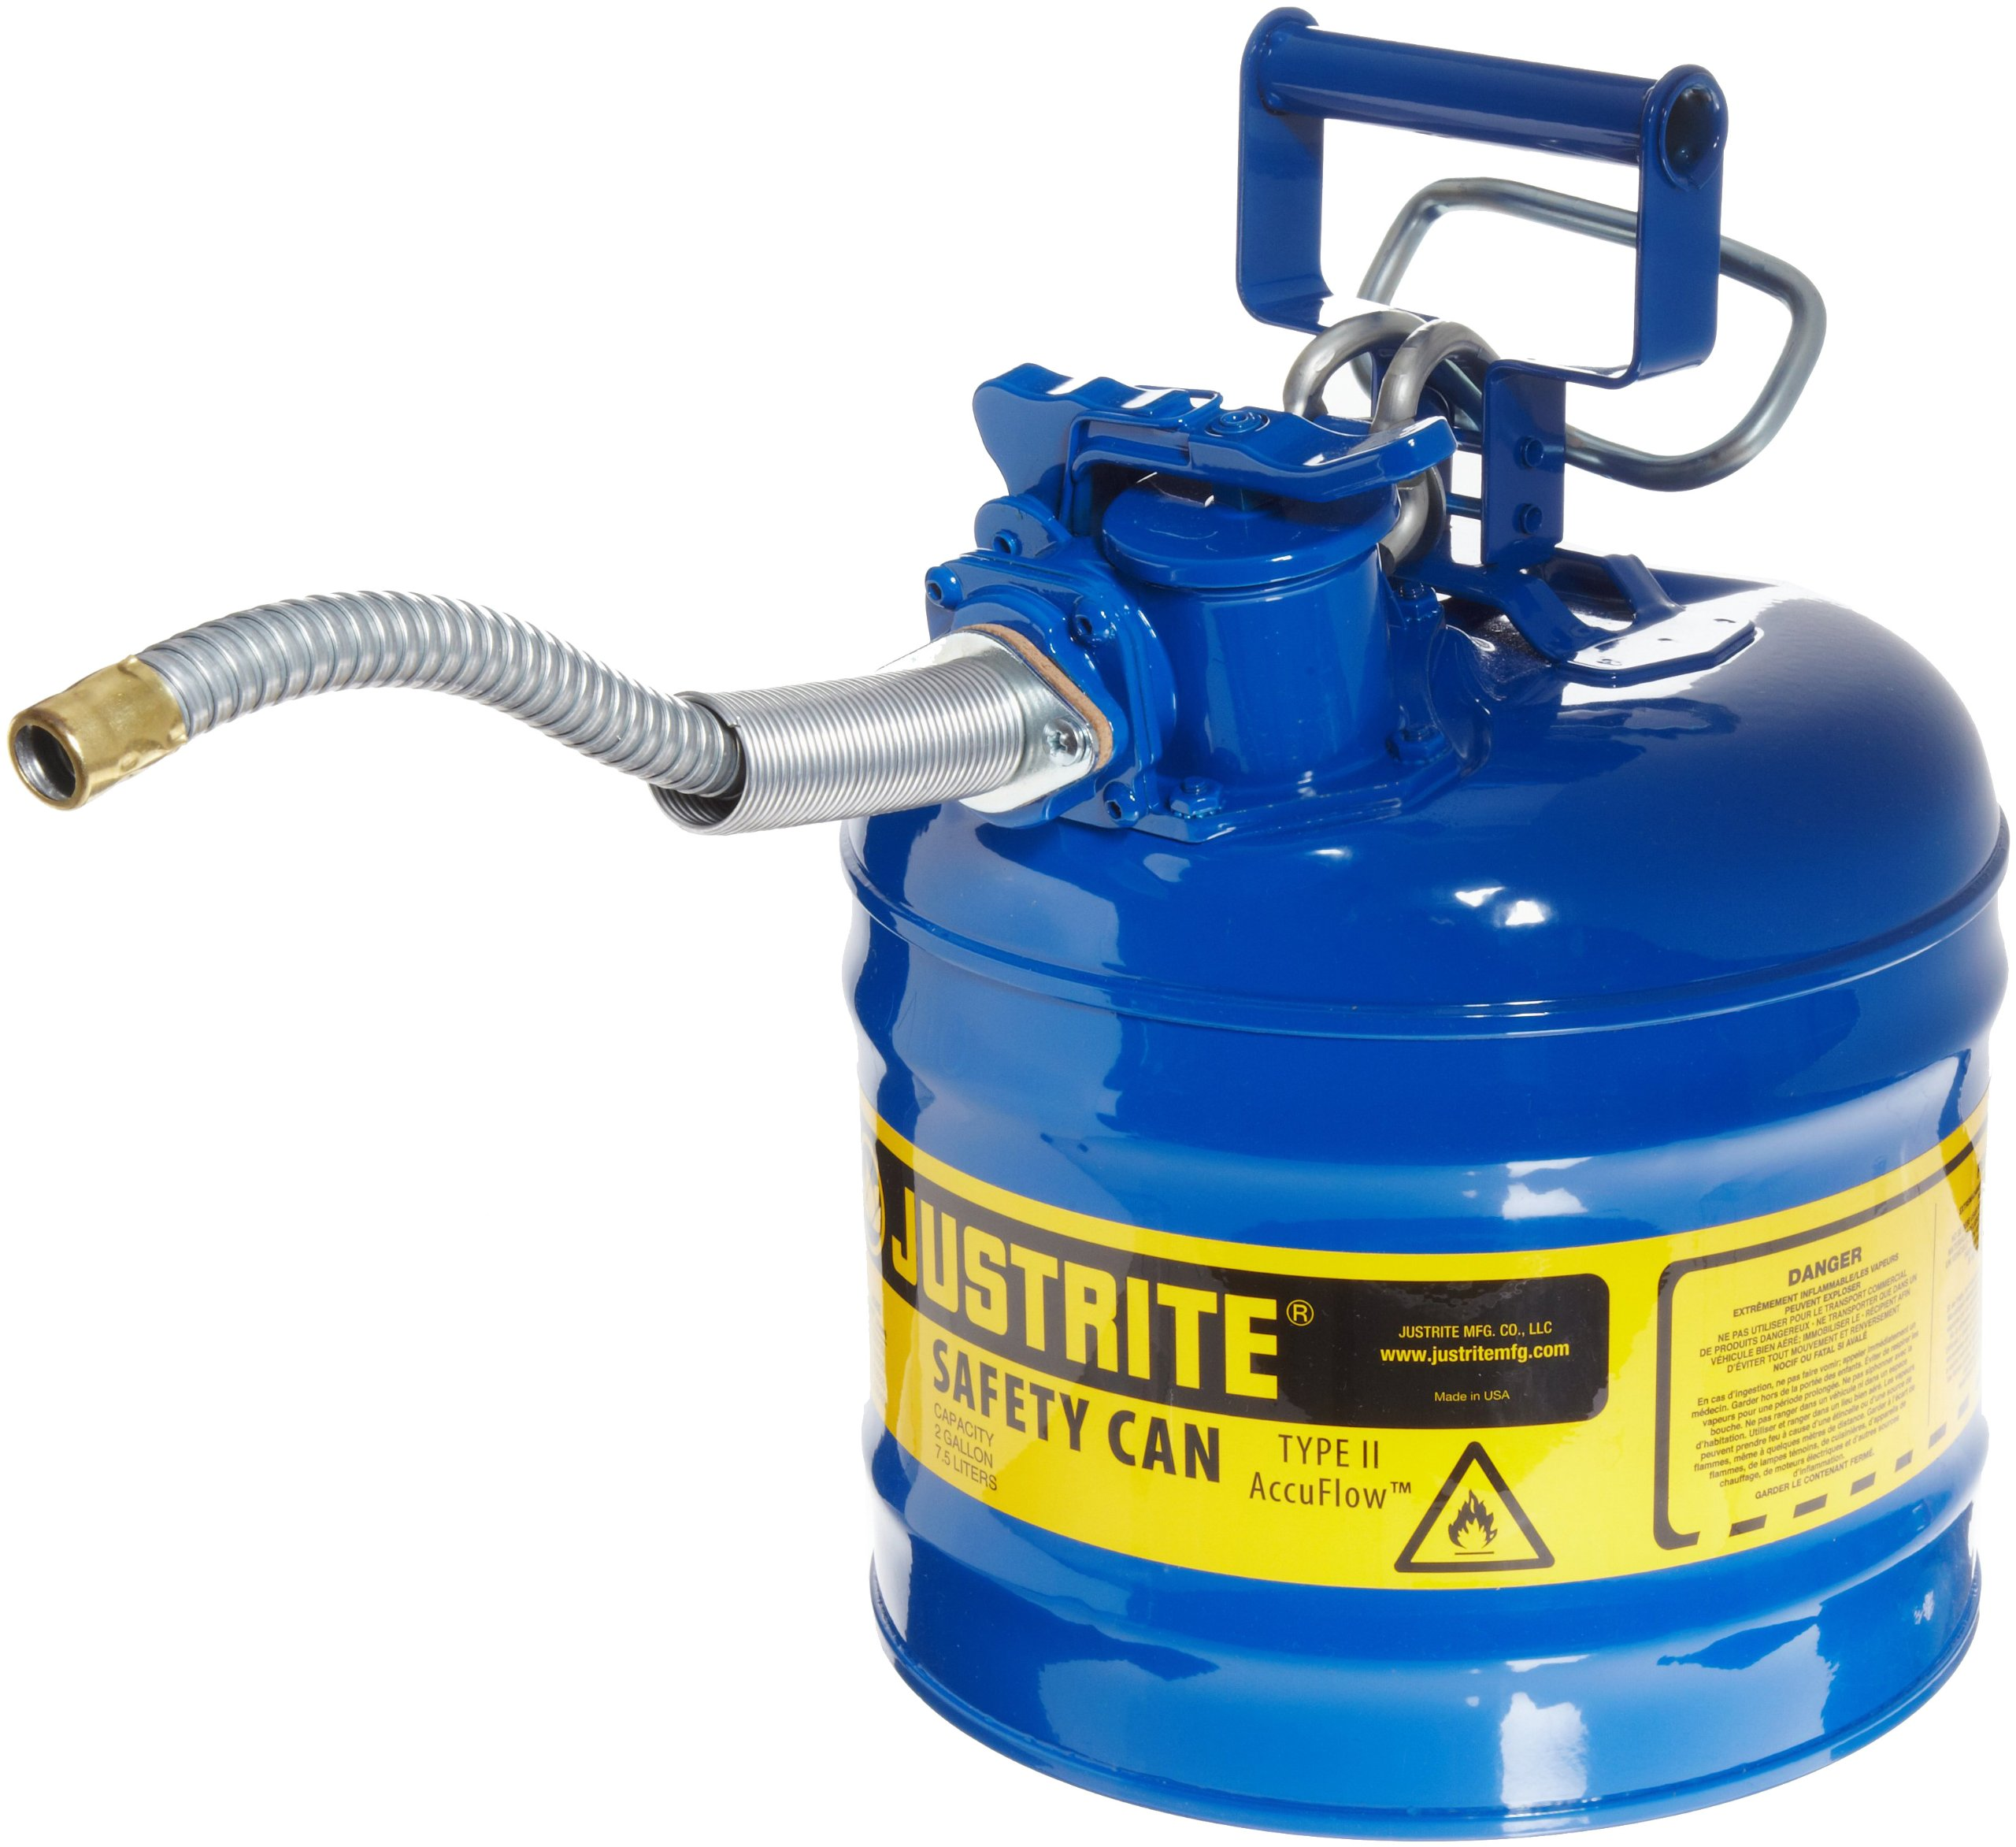 Justrite 7220320 AccuFlow 2 Gallon, 9.50'' OD x 13.25'' H Galvanized Steel Type II Blue Safety Can With 5/8'' Flexible Spout